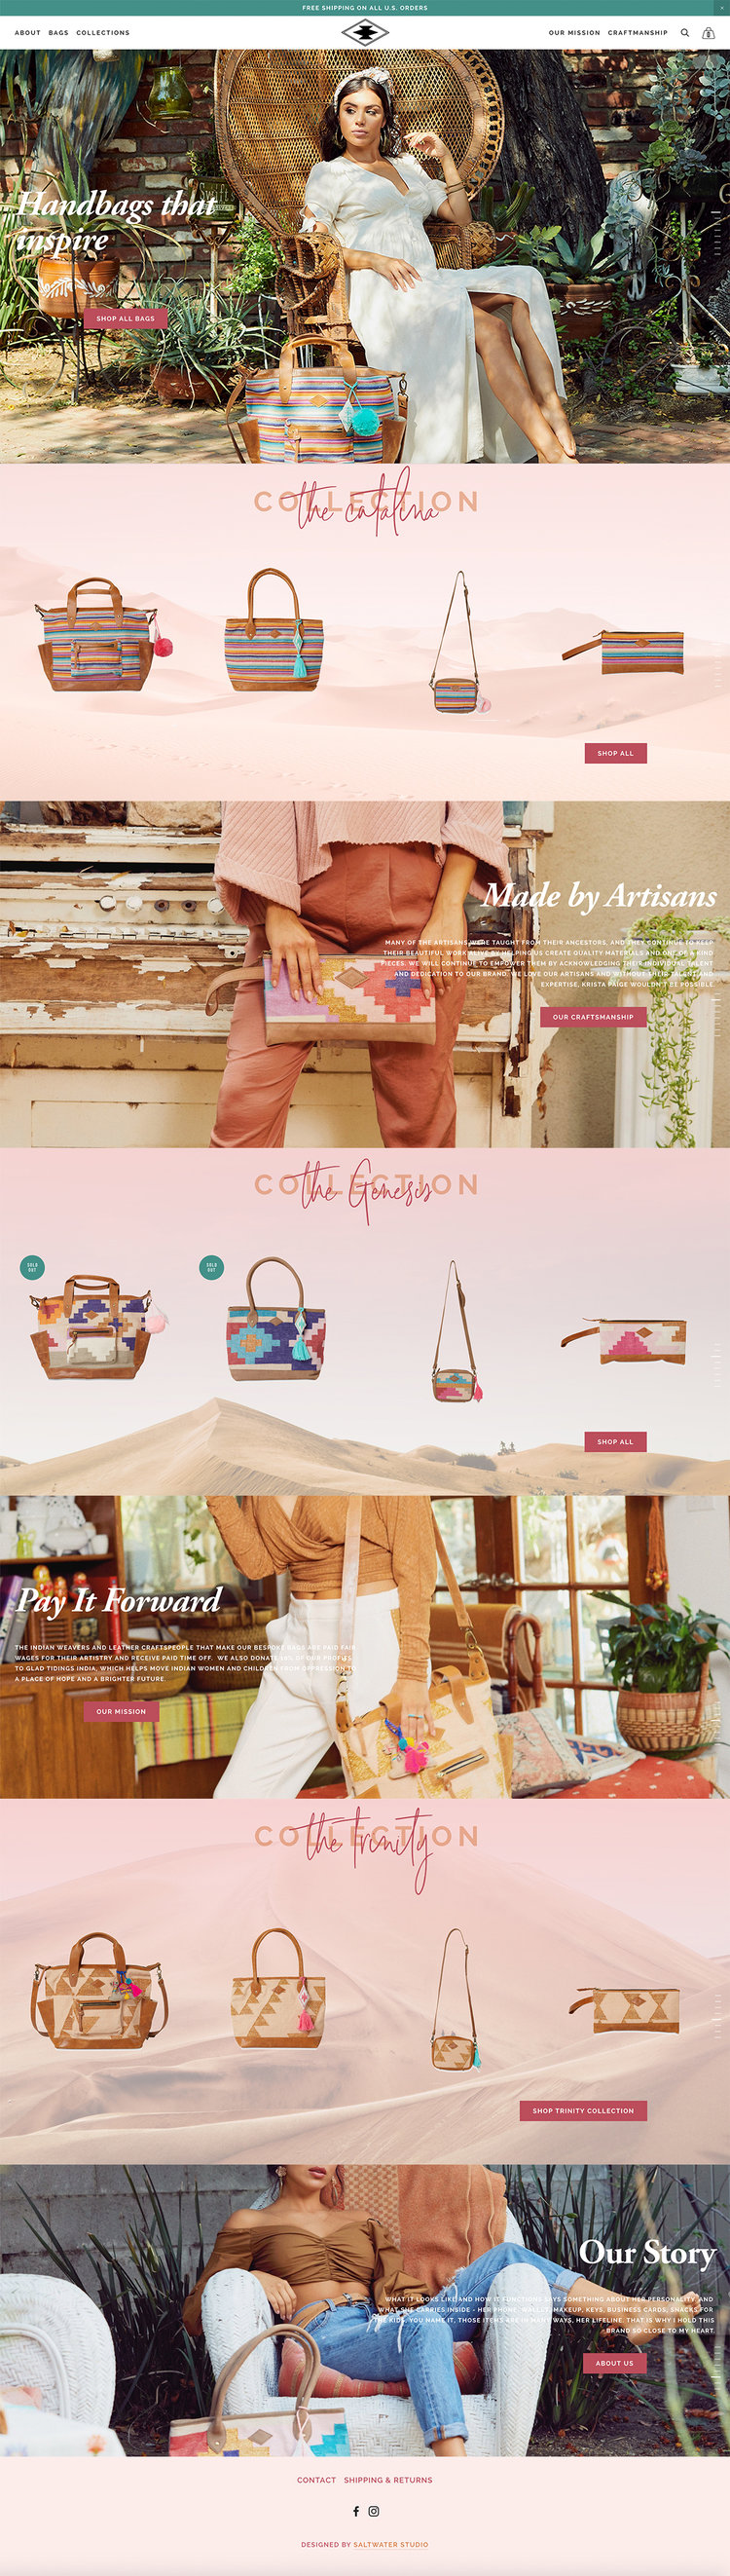 Boho+Handbag+Website+Moroccan+Inspired+Website+Design+Boho+Website.jpg